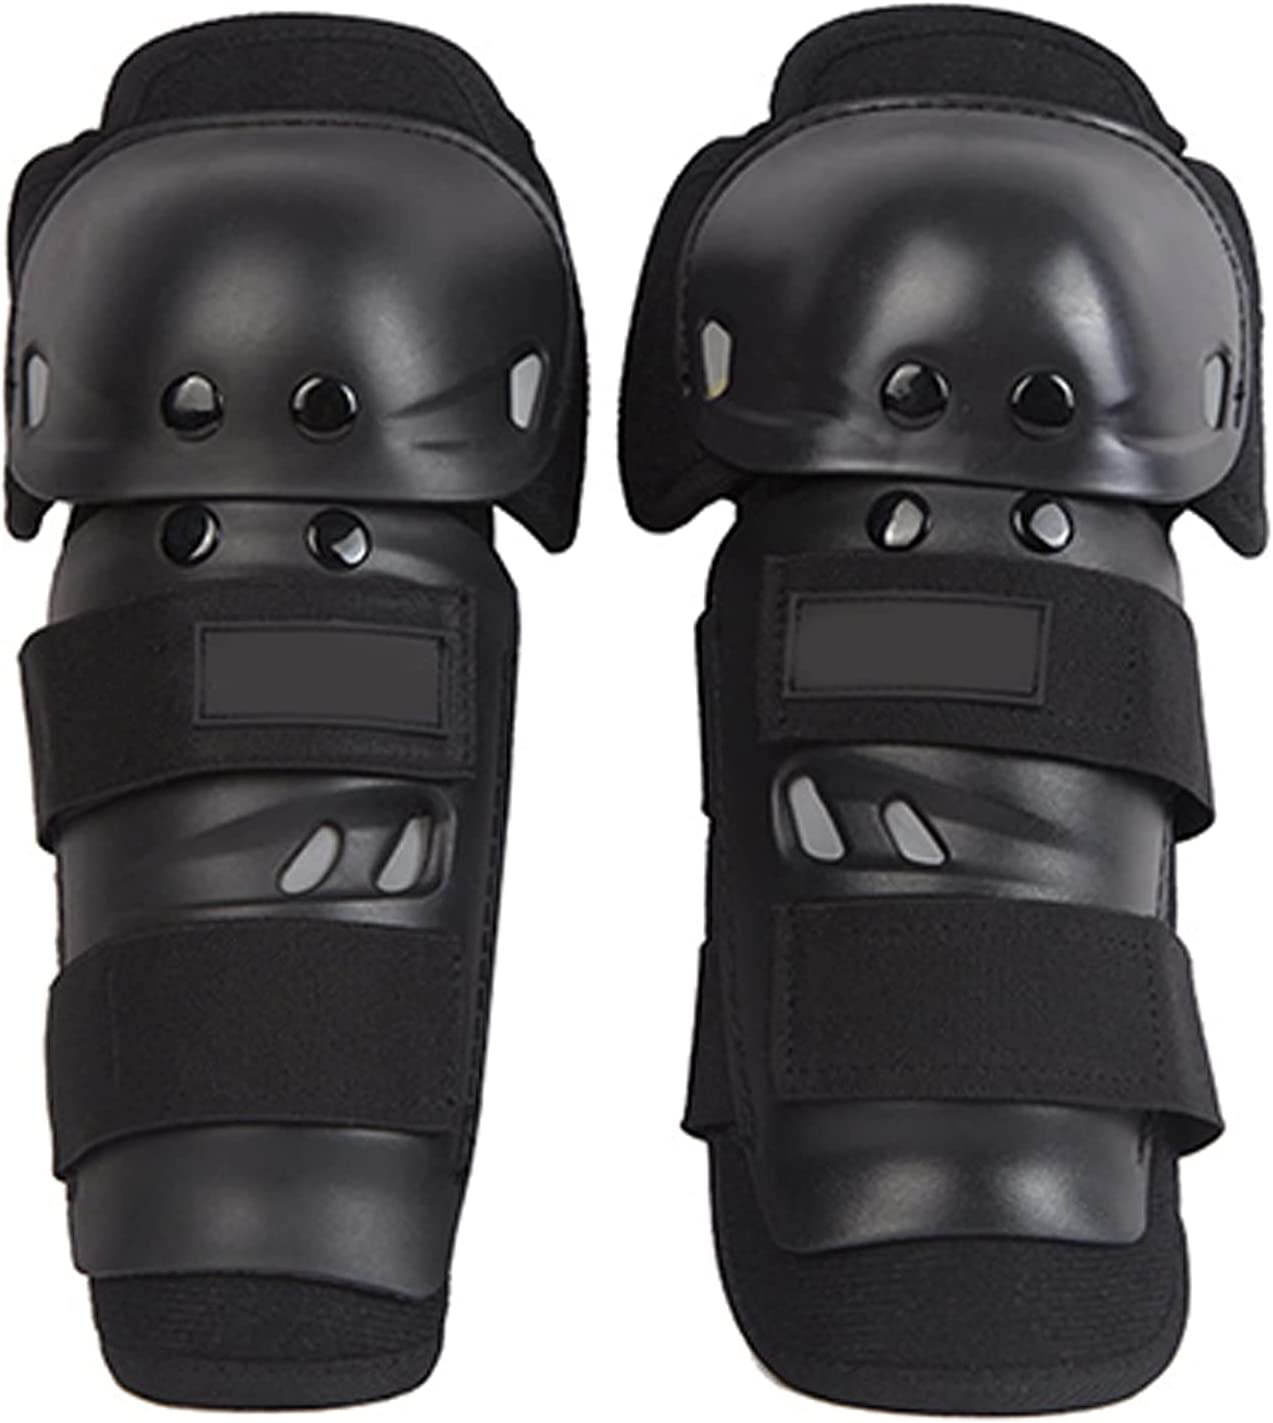 FANQIDM Great interest Knee Pads Motorcycle Knee-and-Shin Elbow Guards Ranking TOP5